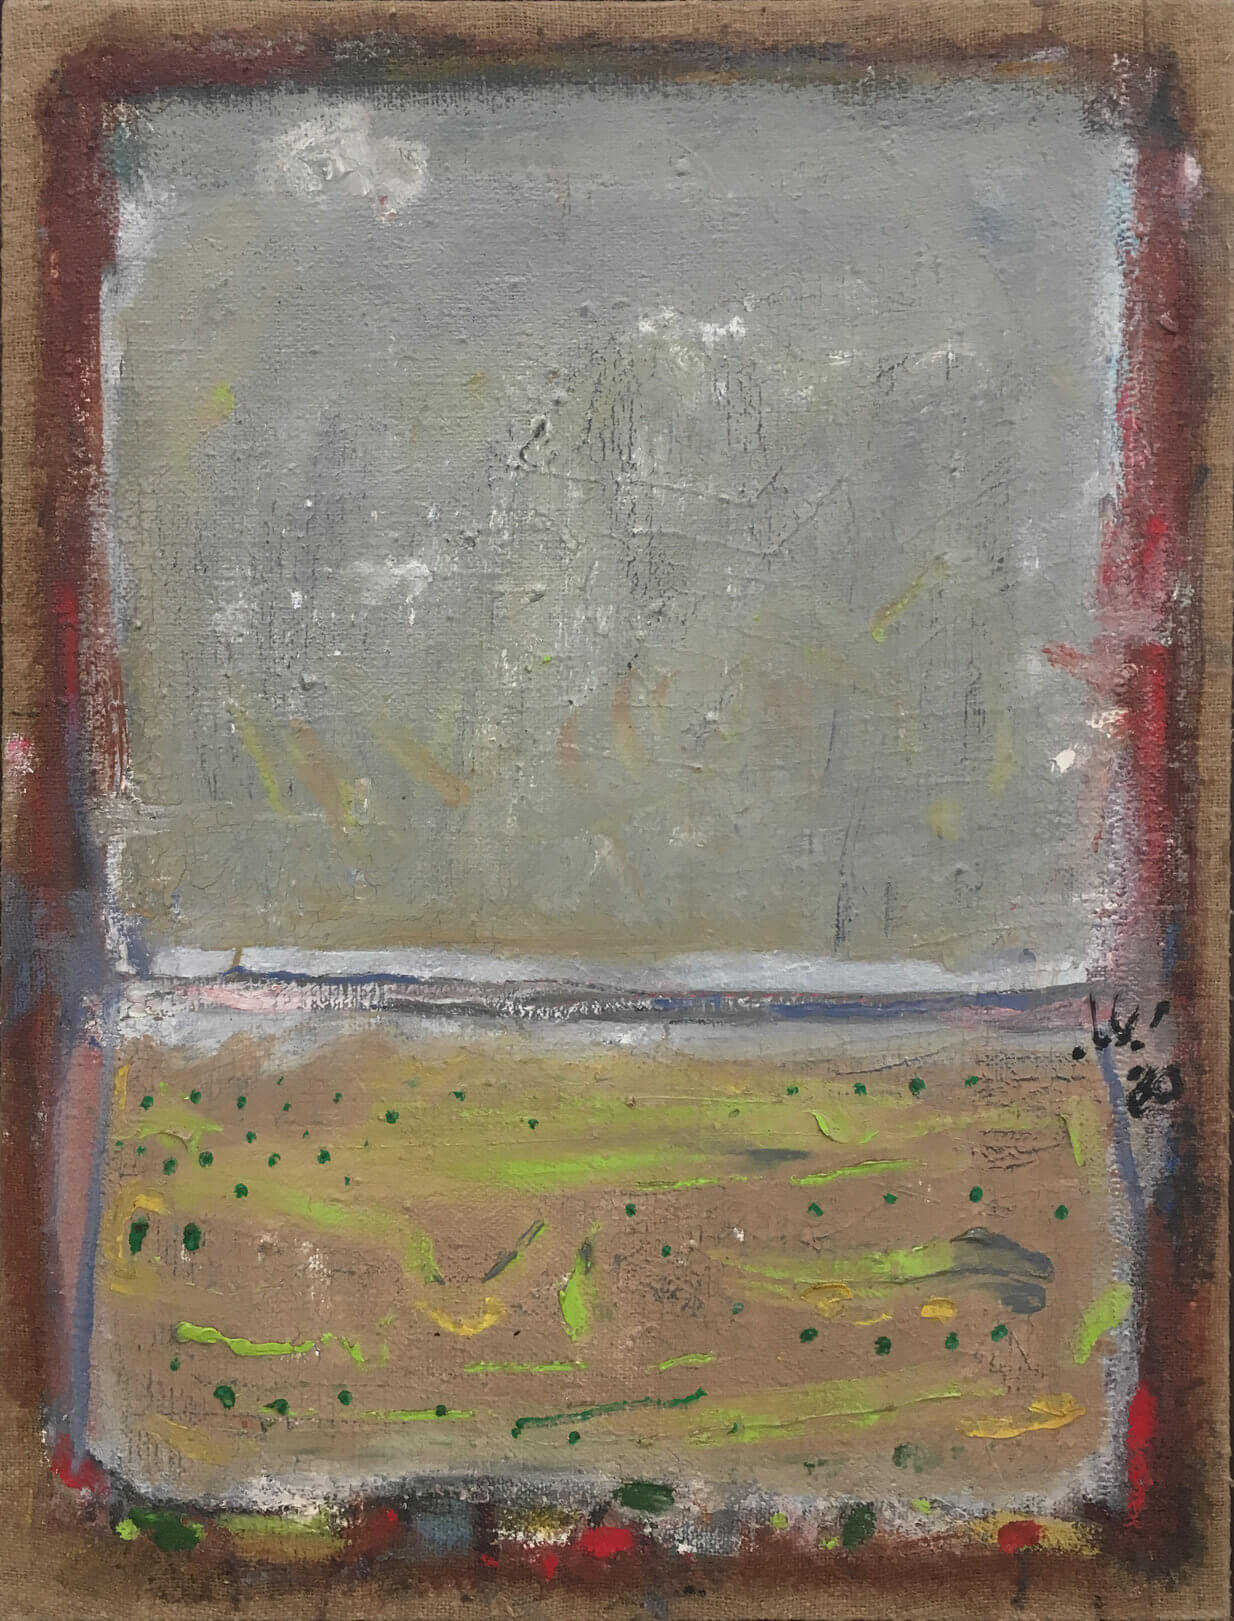 1476_Yehezkel Streichman, 1980, Mixed media on burlap, 80x59 cm 9,500$-1234x1621